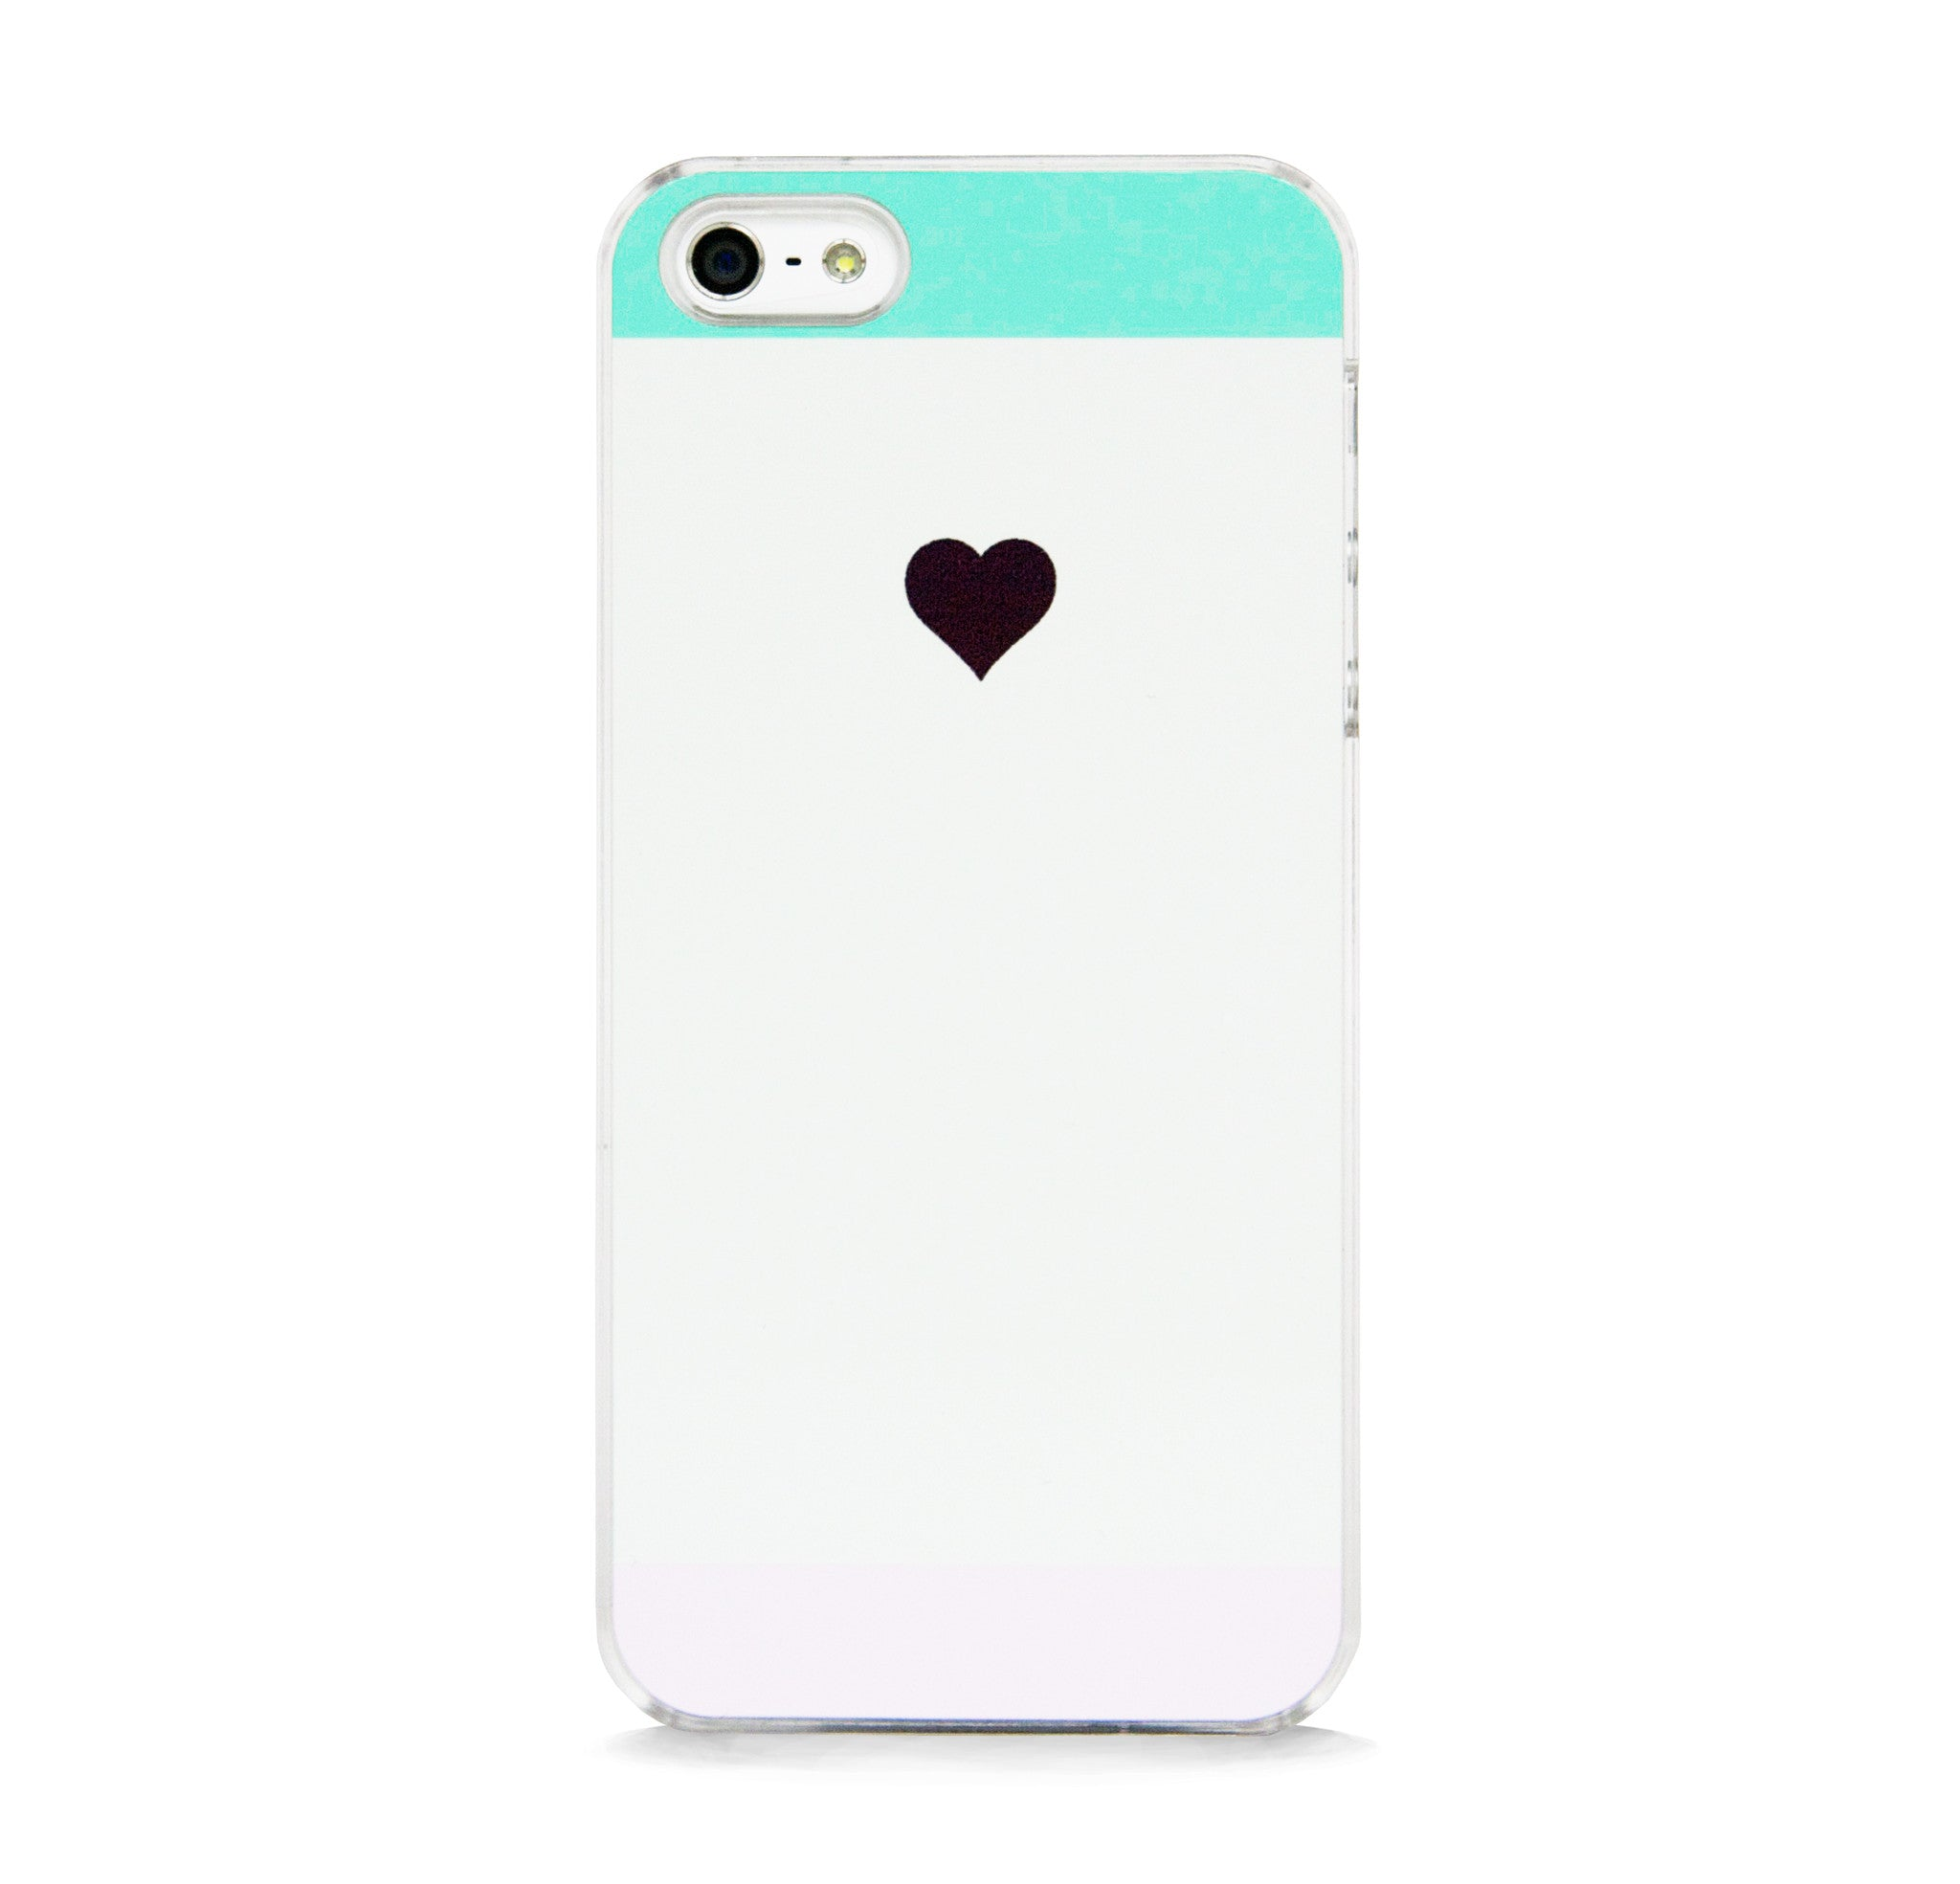 SYMBOL HEART COLOR BLOCK FOR IPHONE 5/5S